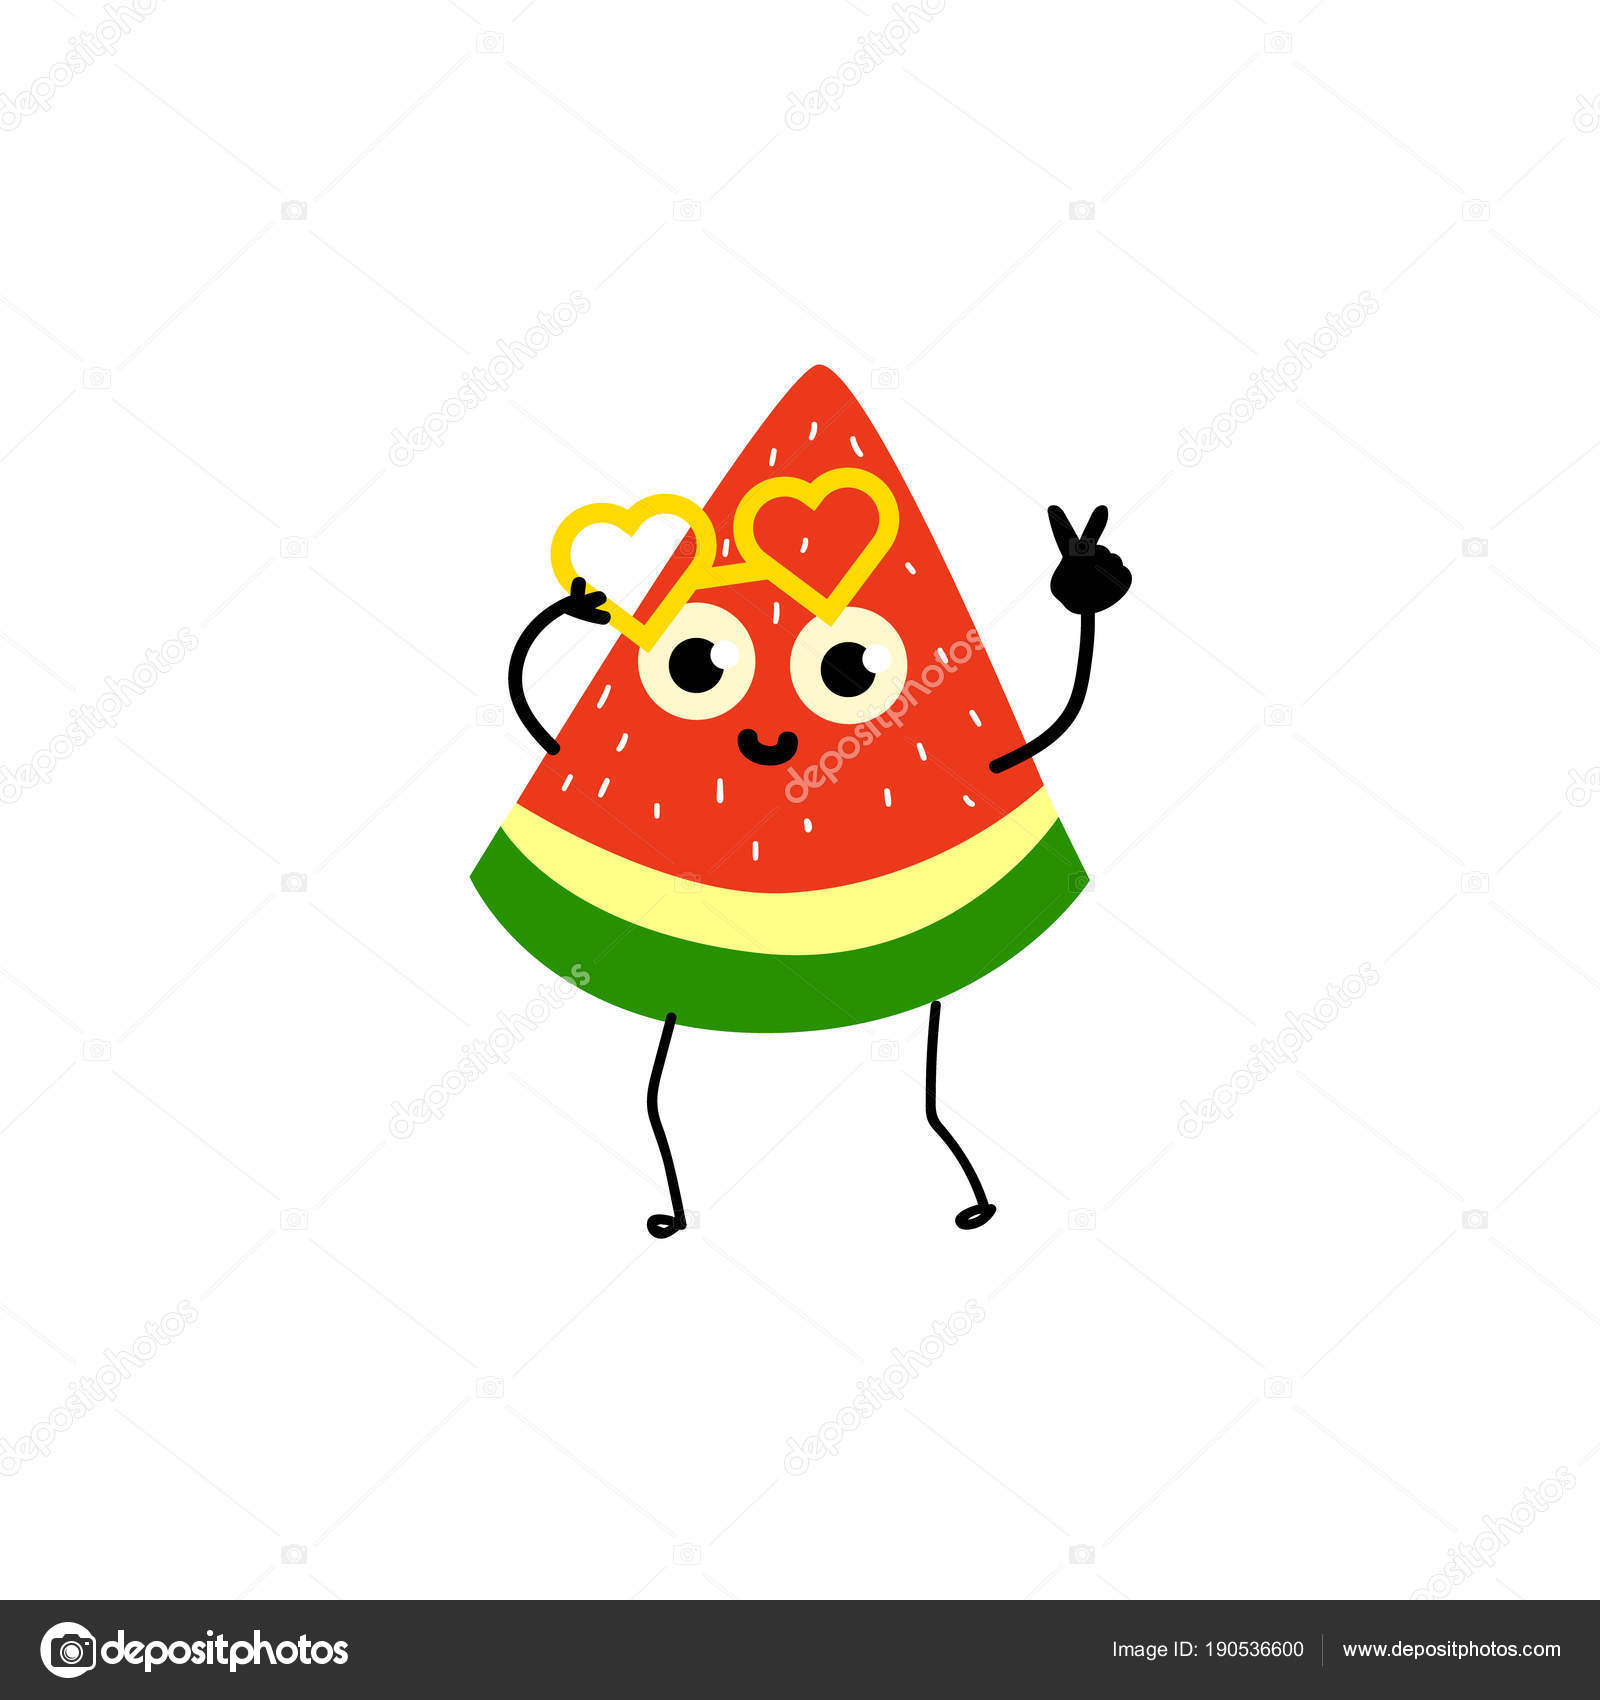 9df9bb3f5c Funny watermelon party character with human face wearing heart-shaped  glasses